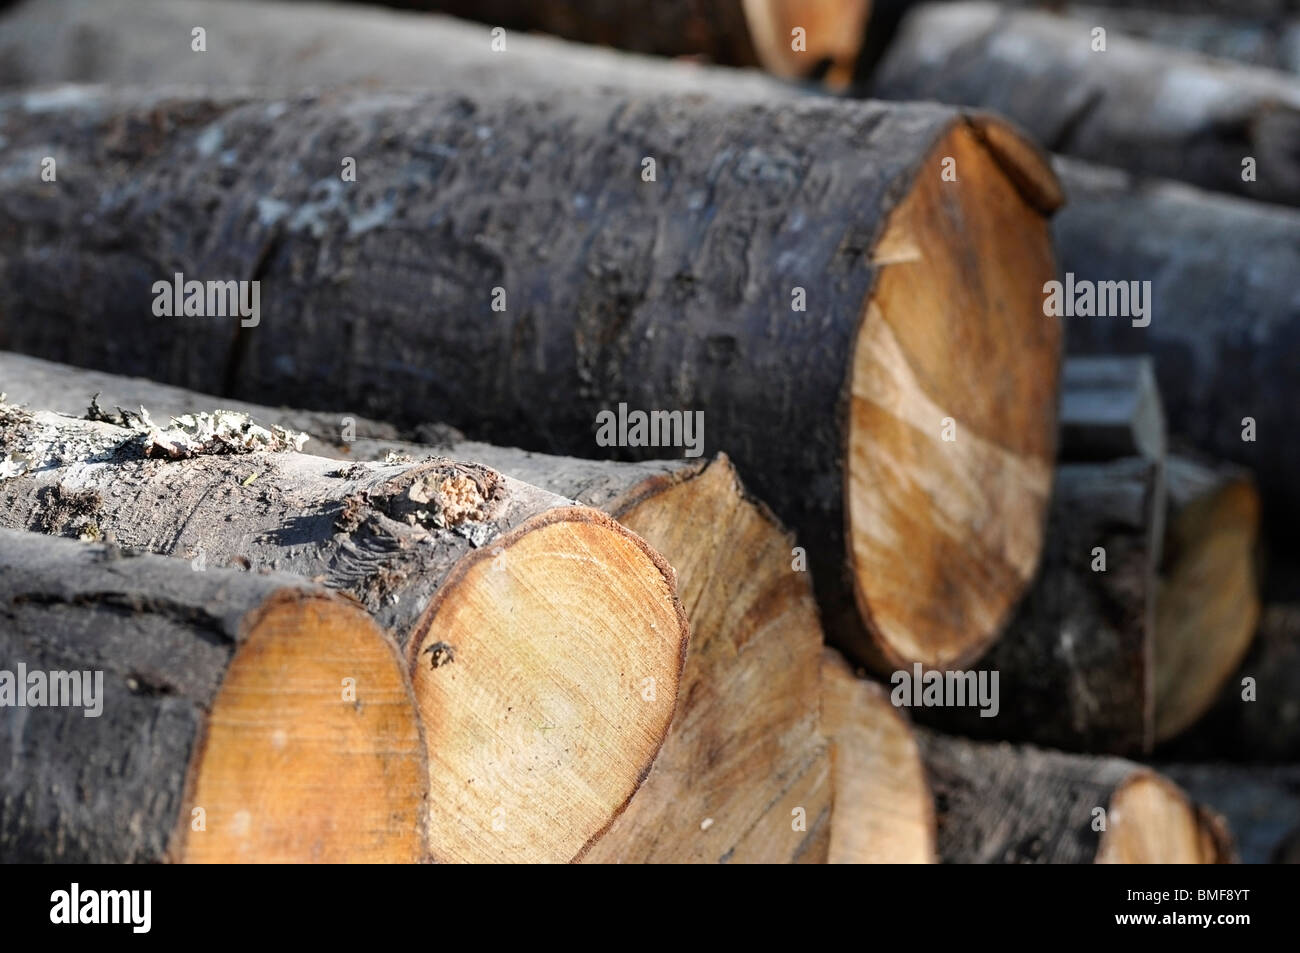 Logs of Wood - Stock Image